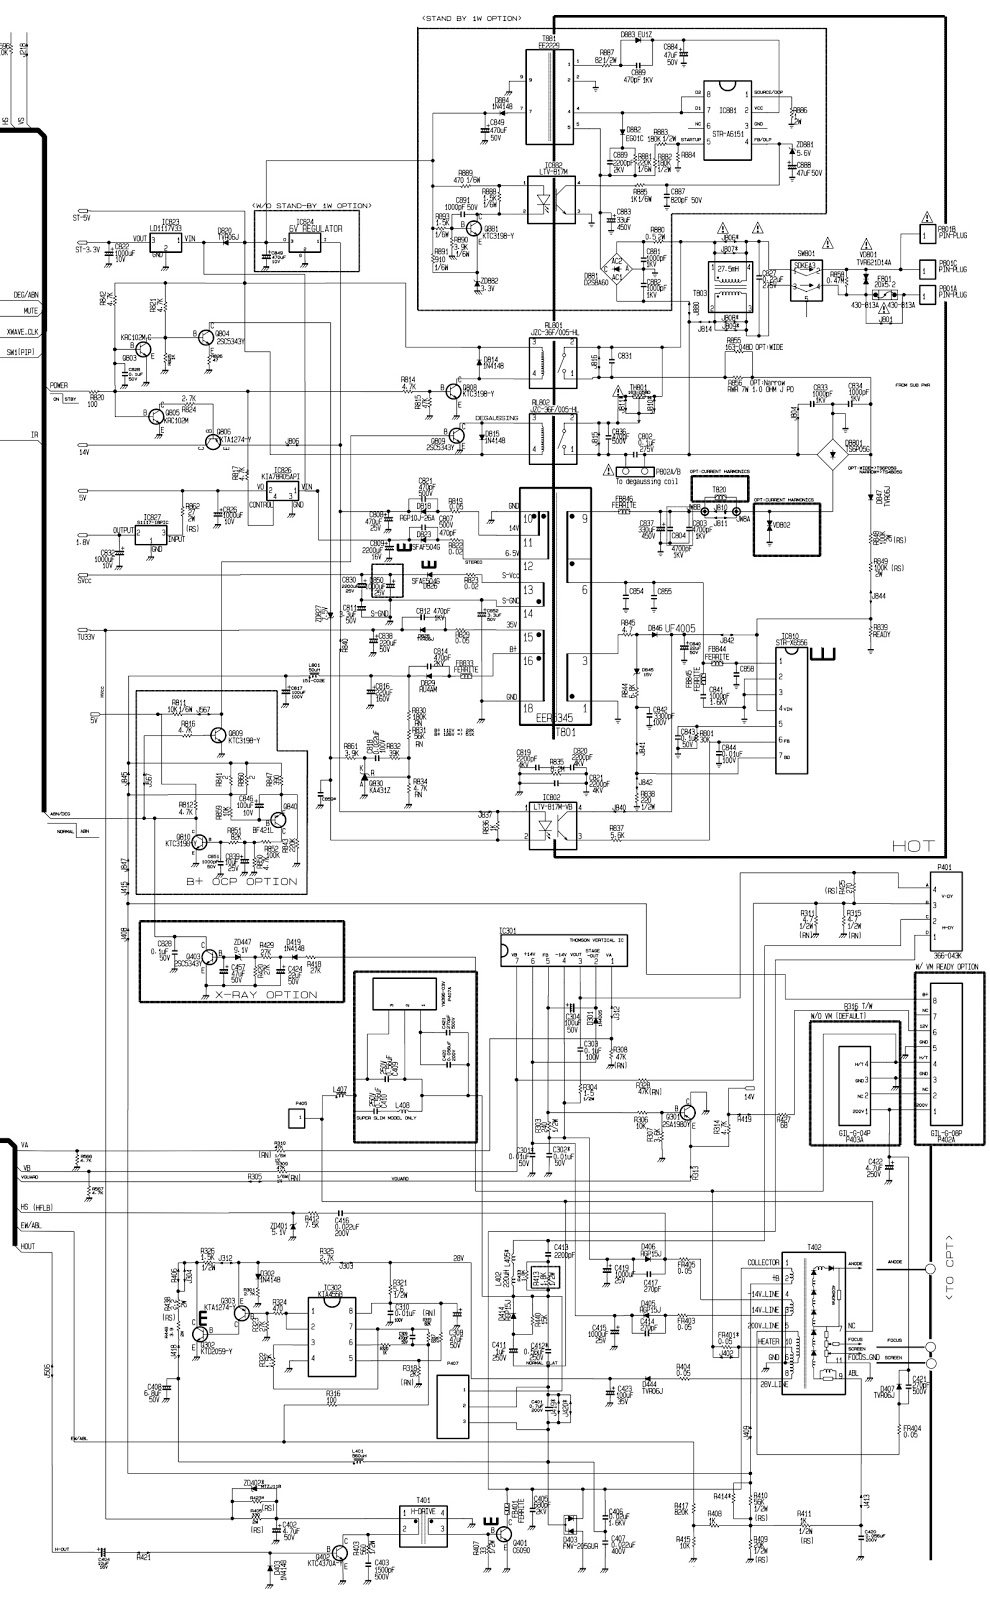 Schematic Diagrams: STR-X6556 based SMPS power supply